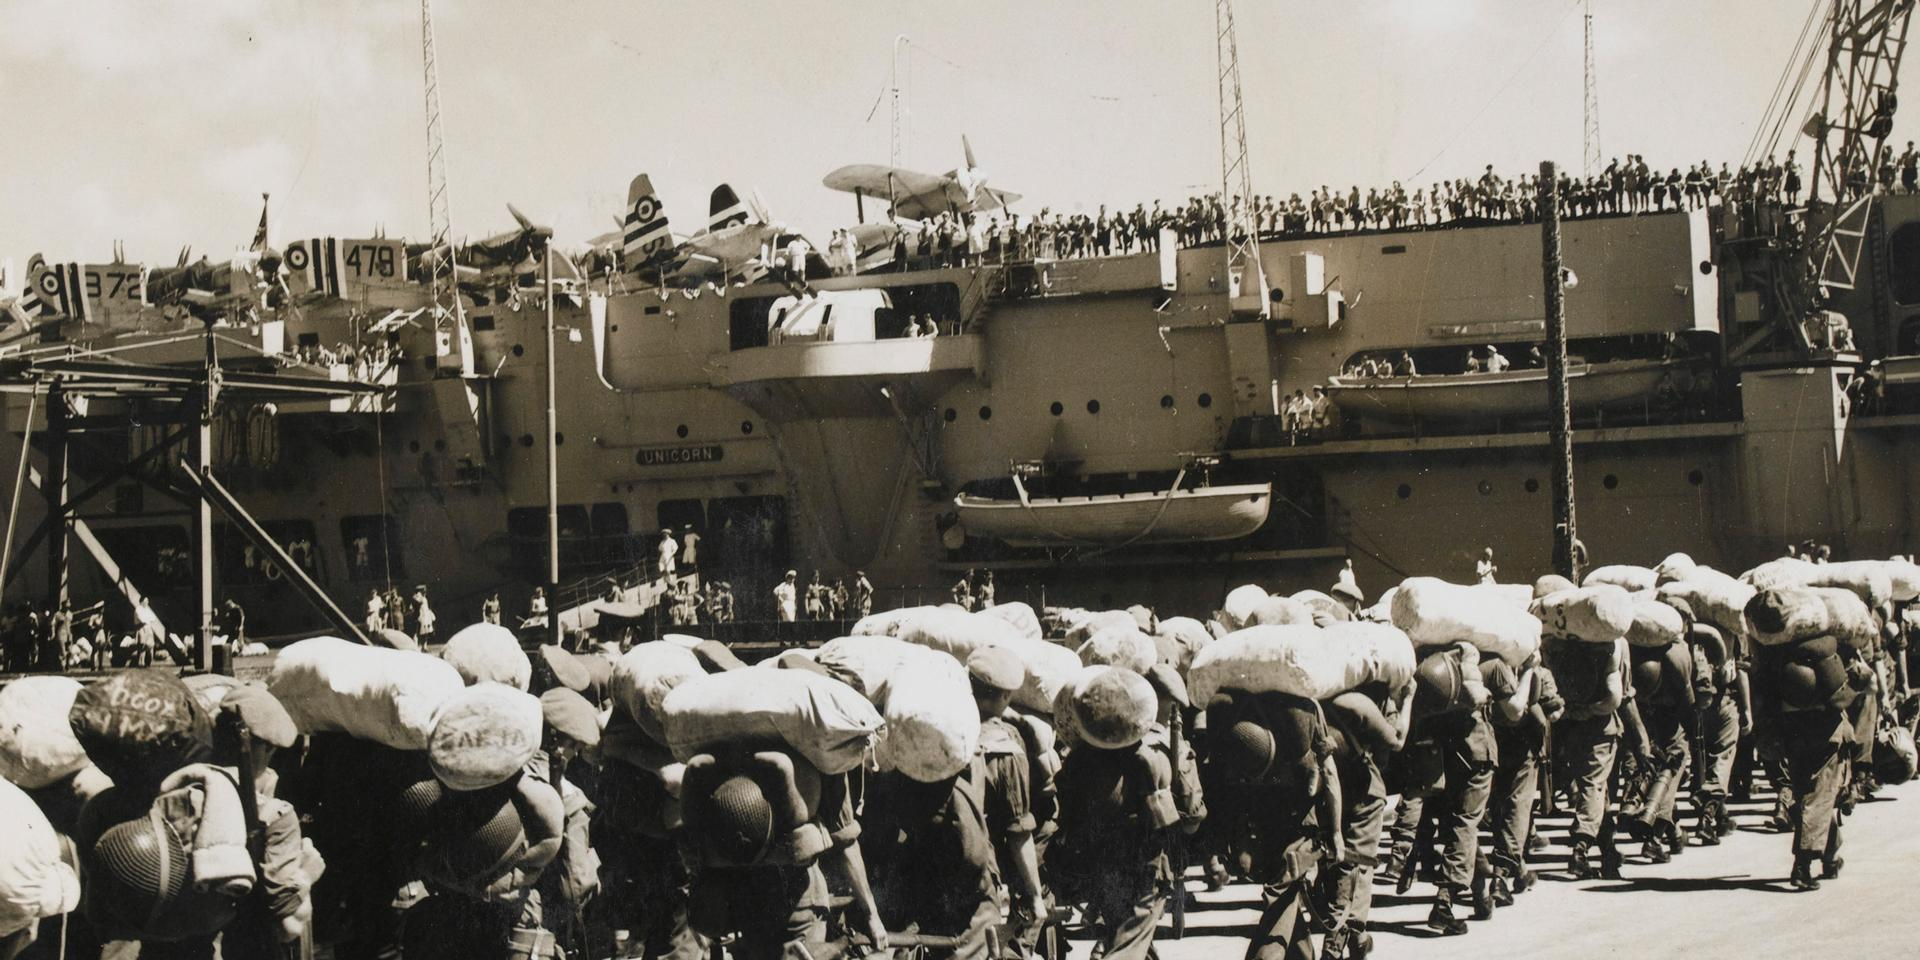 British troops board HMS Unicorn at Hong Kong for the voyage to Korea, 25 August 1950